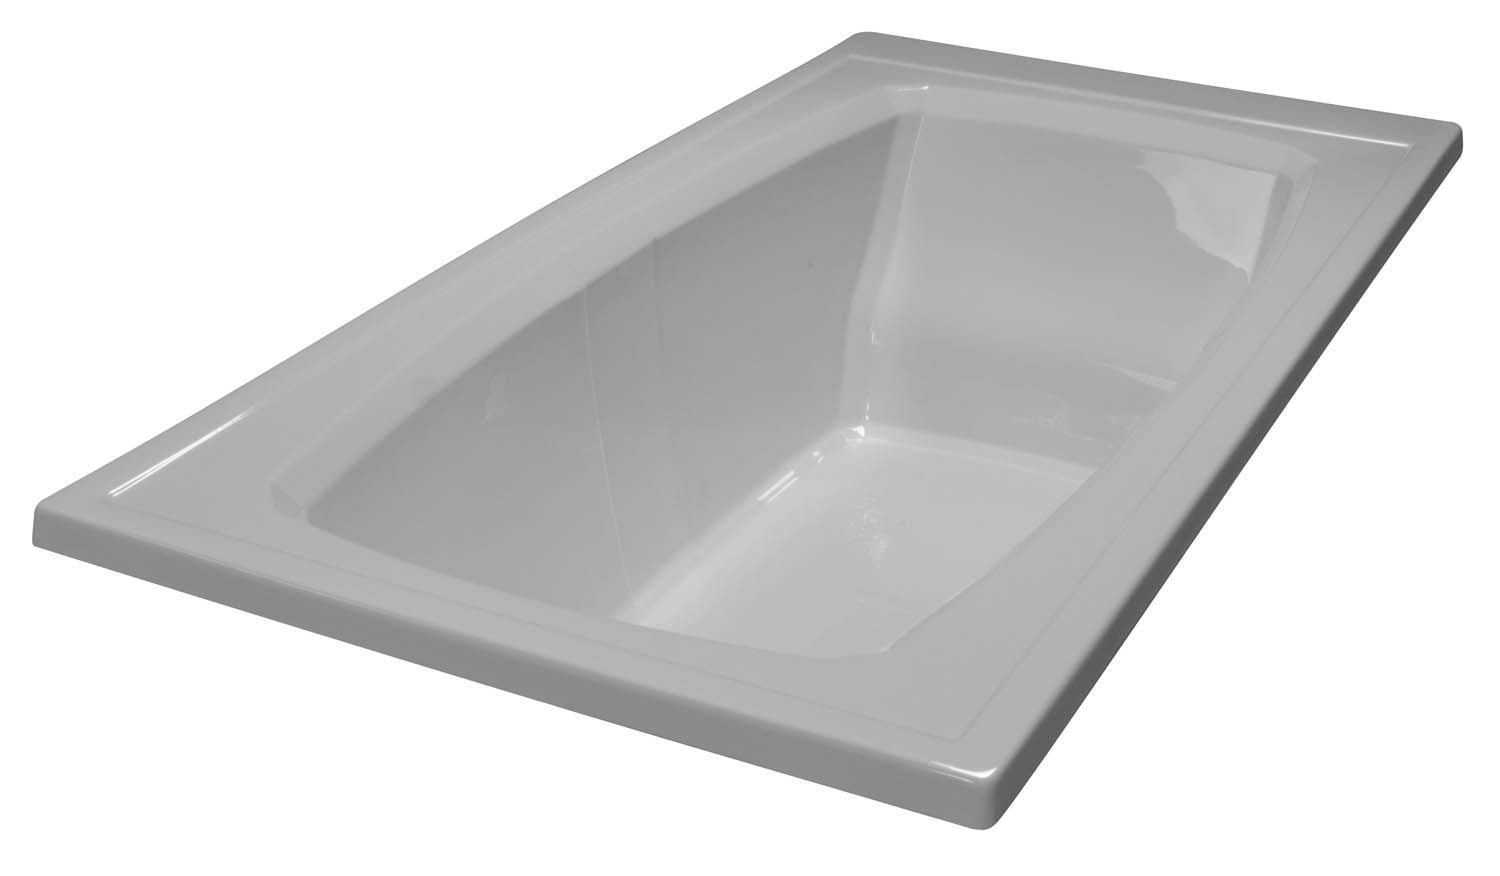 36×72 Rectangular Bathtub BR 21